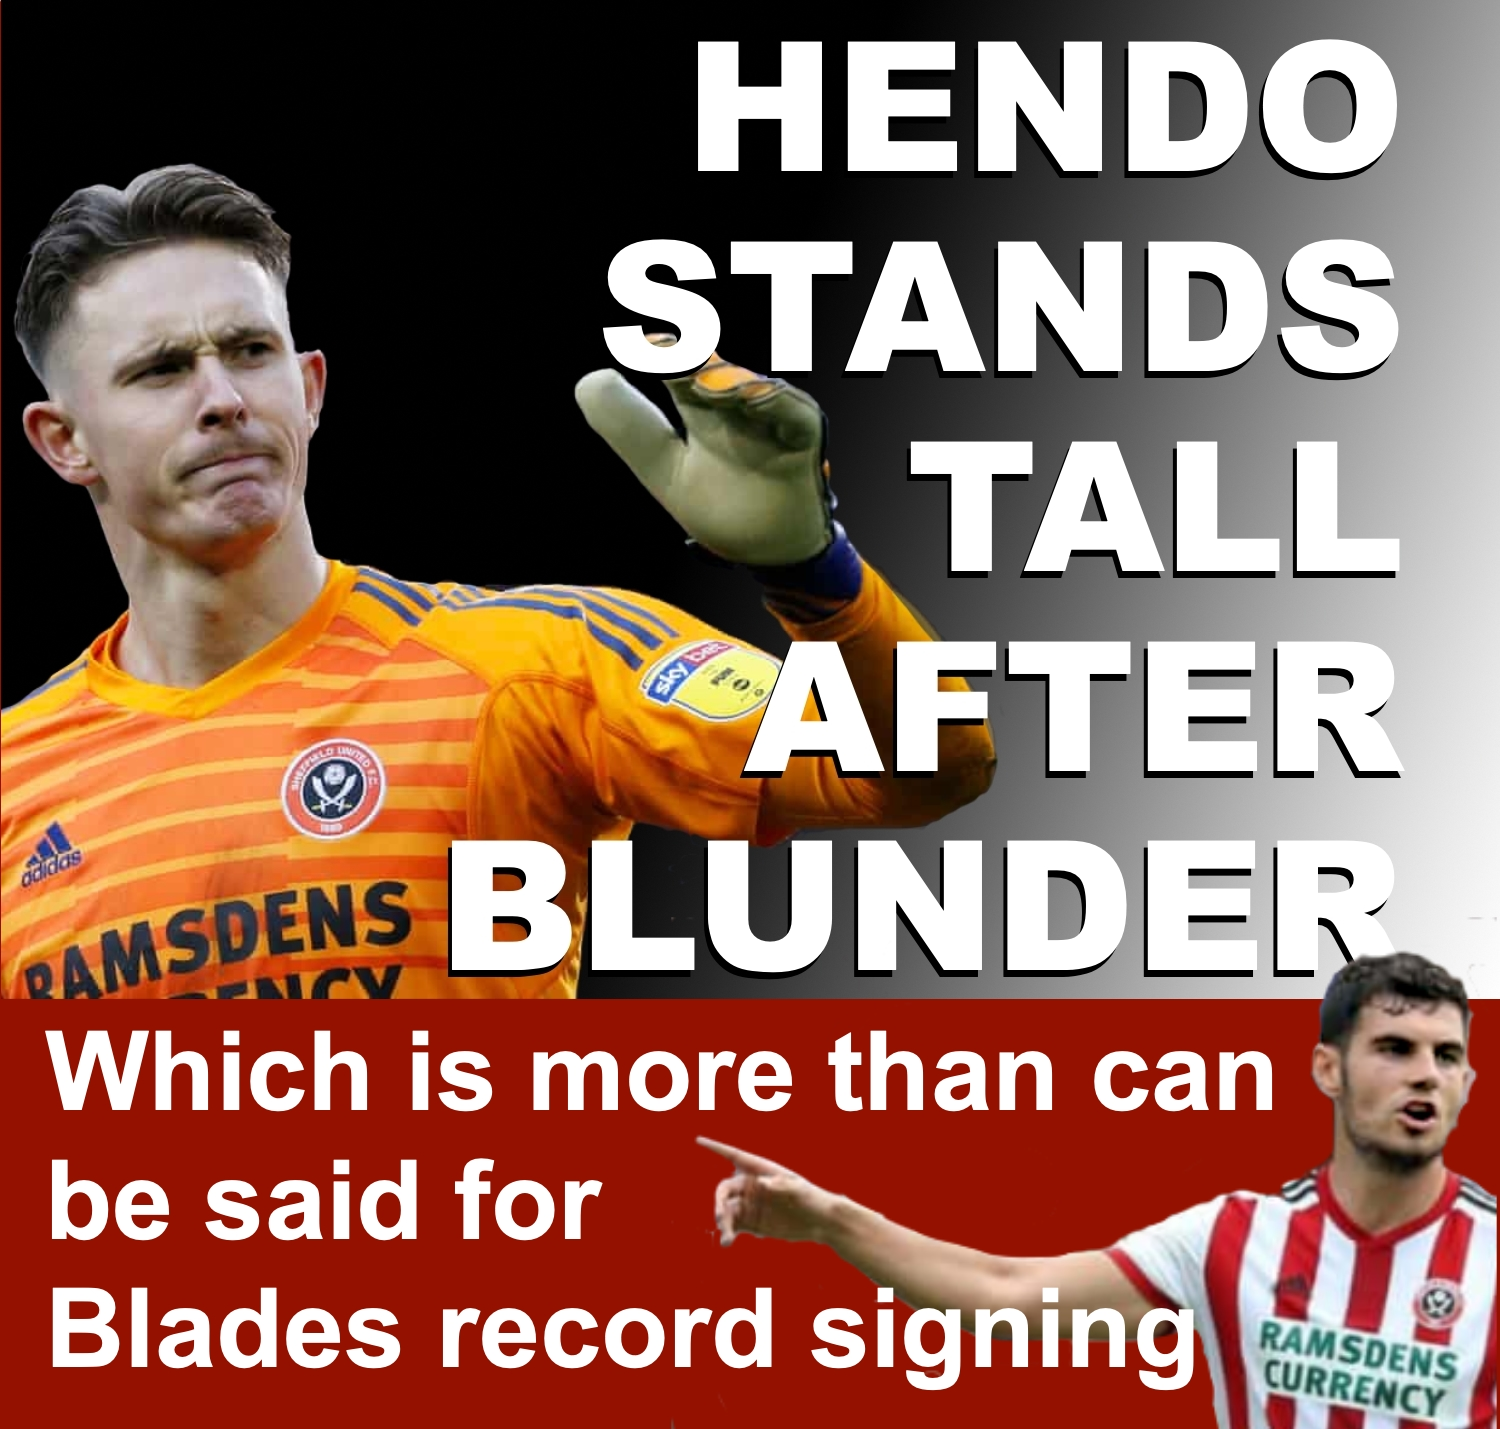 Sheffield United goalkeeper Dean Henderson stands tall despite blunder at Bramall Lane which cost Blades three points against promotion rivals Leeds.